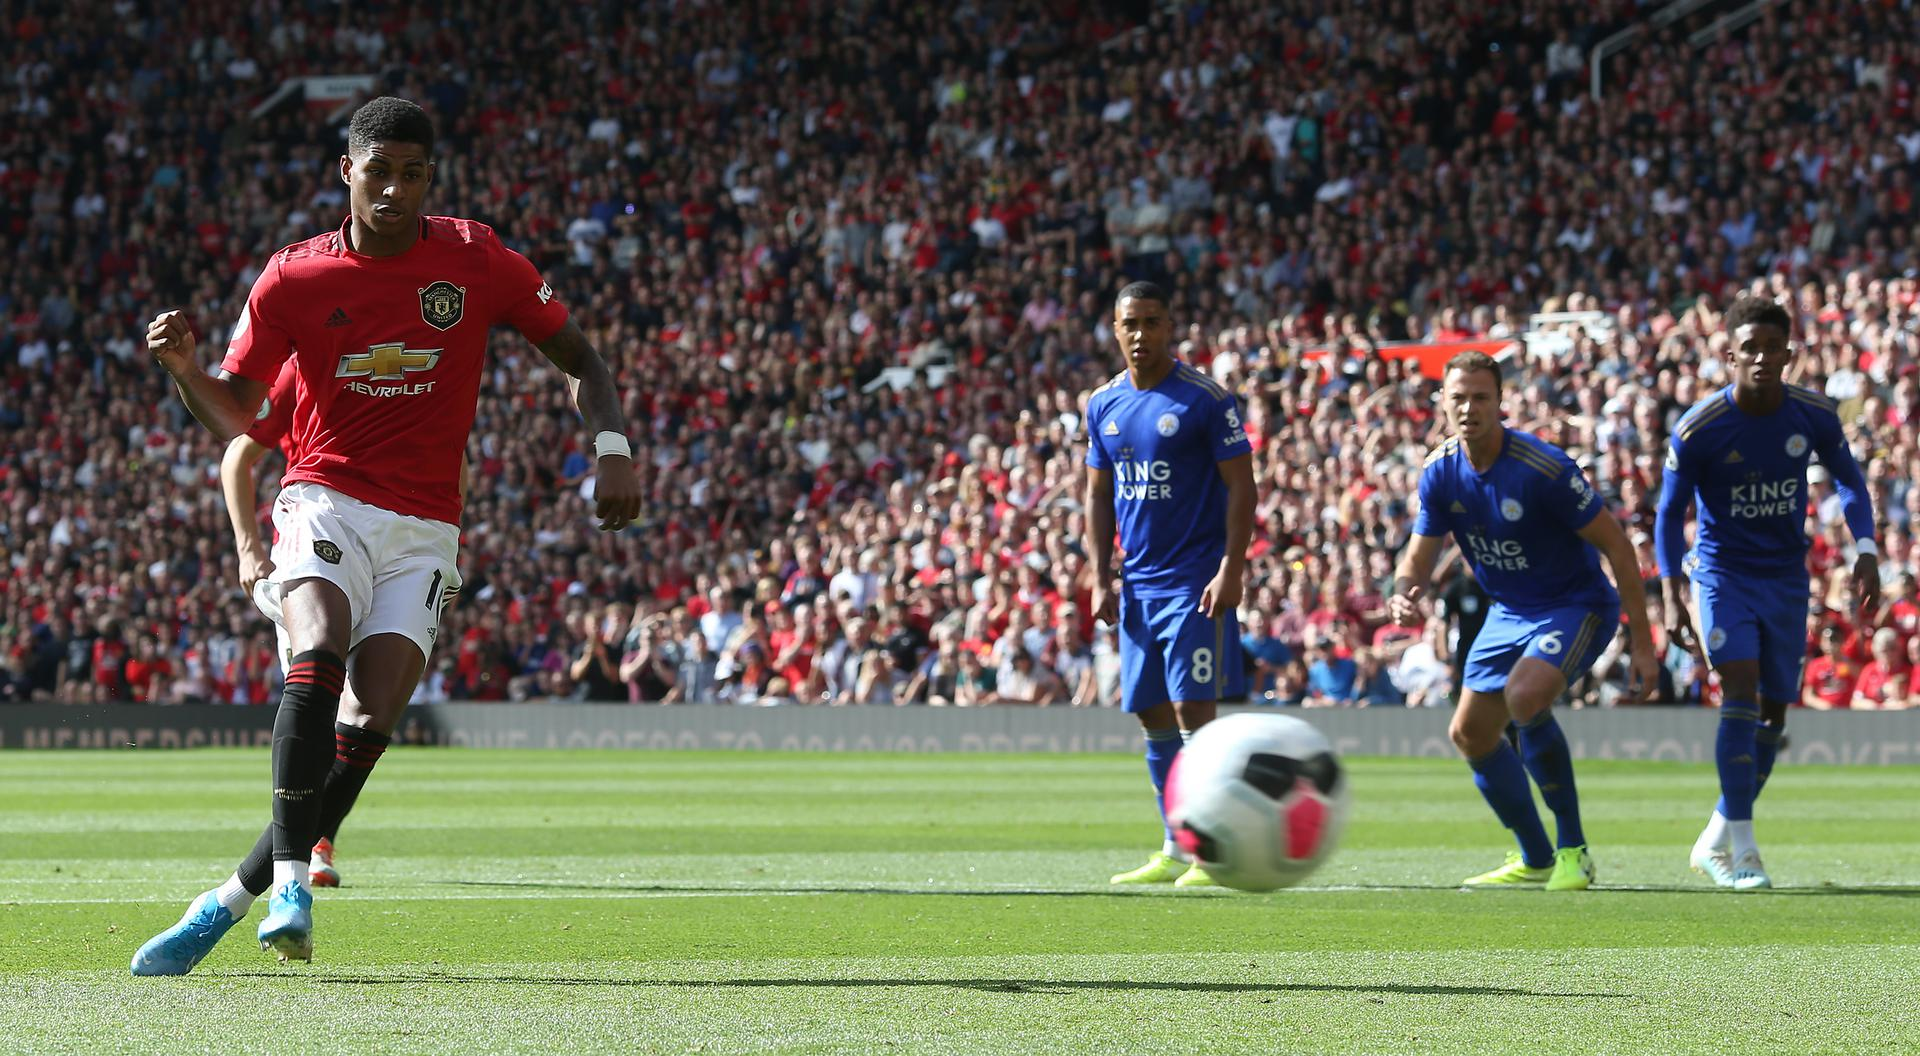 Marcus Rashford scores a penalty。。 for Manchester United against Leicester City.